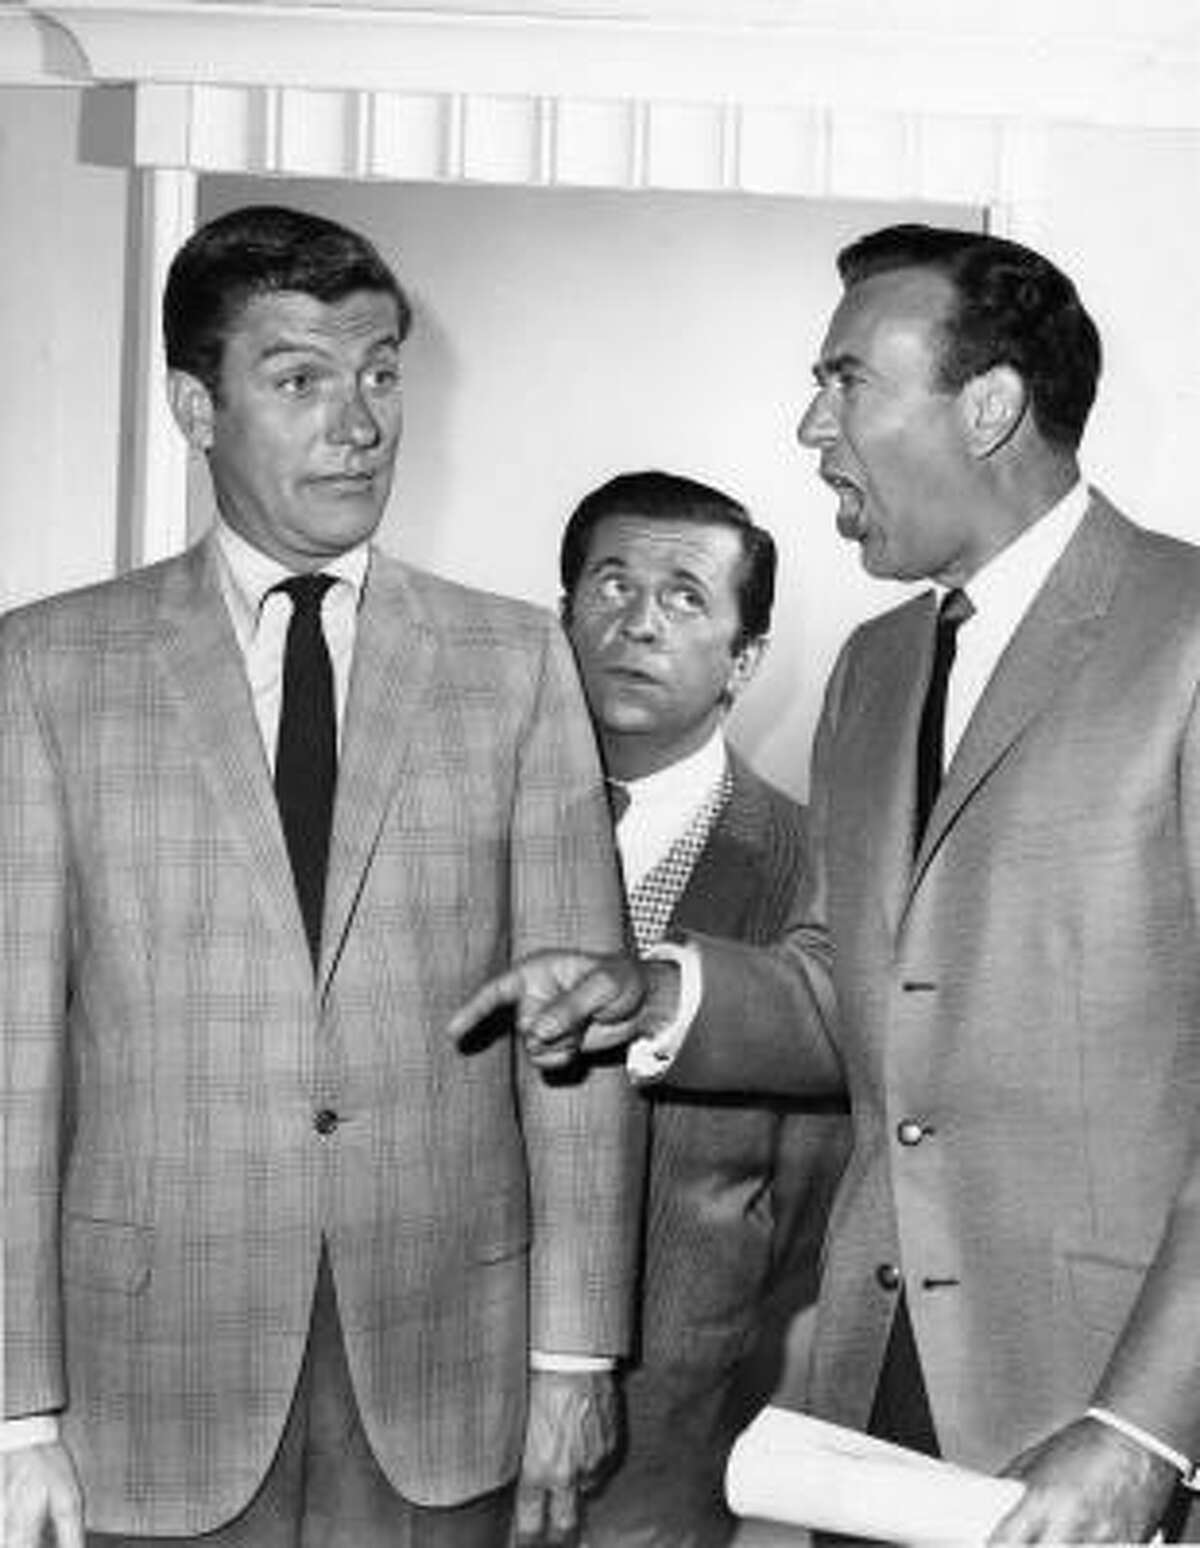 Creator The show was created by Carl Reiner, who also appeared as the boss of Rob Petrie, Van Dyke's character.CBS ran two colorized episodes of the sitcom on December 11. Reiner has said the show was originally shot in black and white because color would have cost $7,000 more an episode.